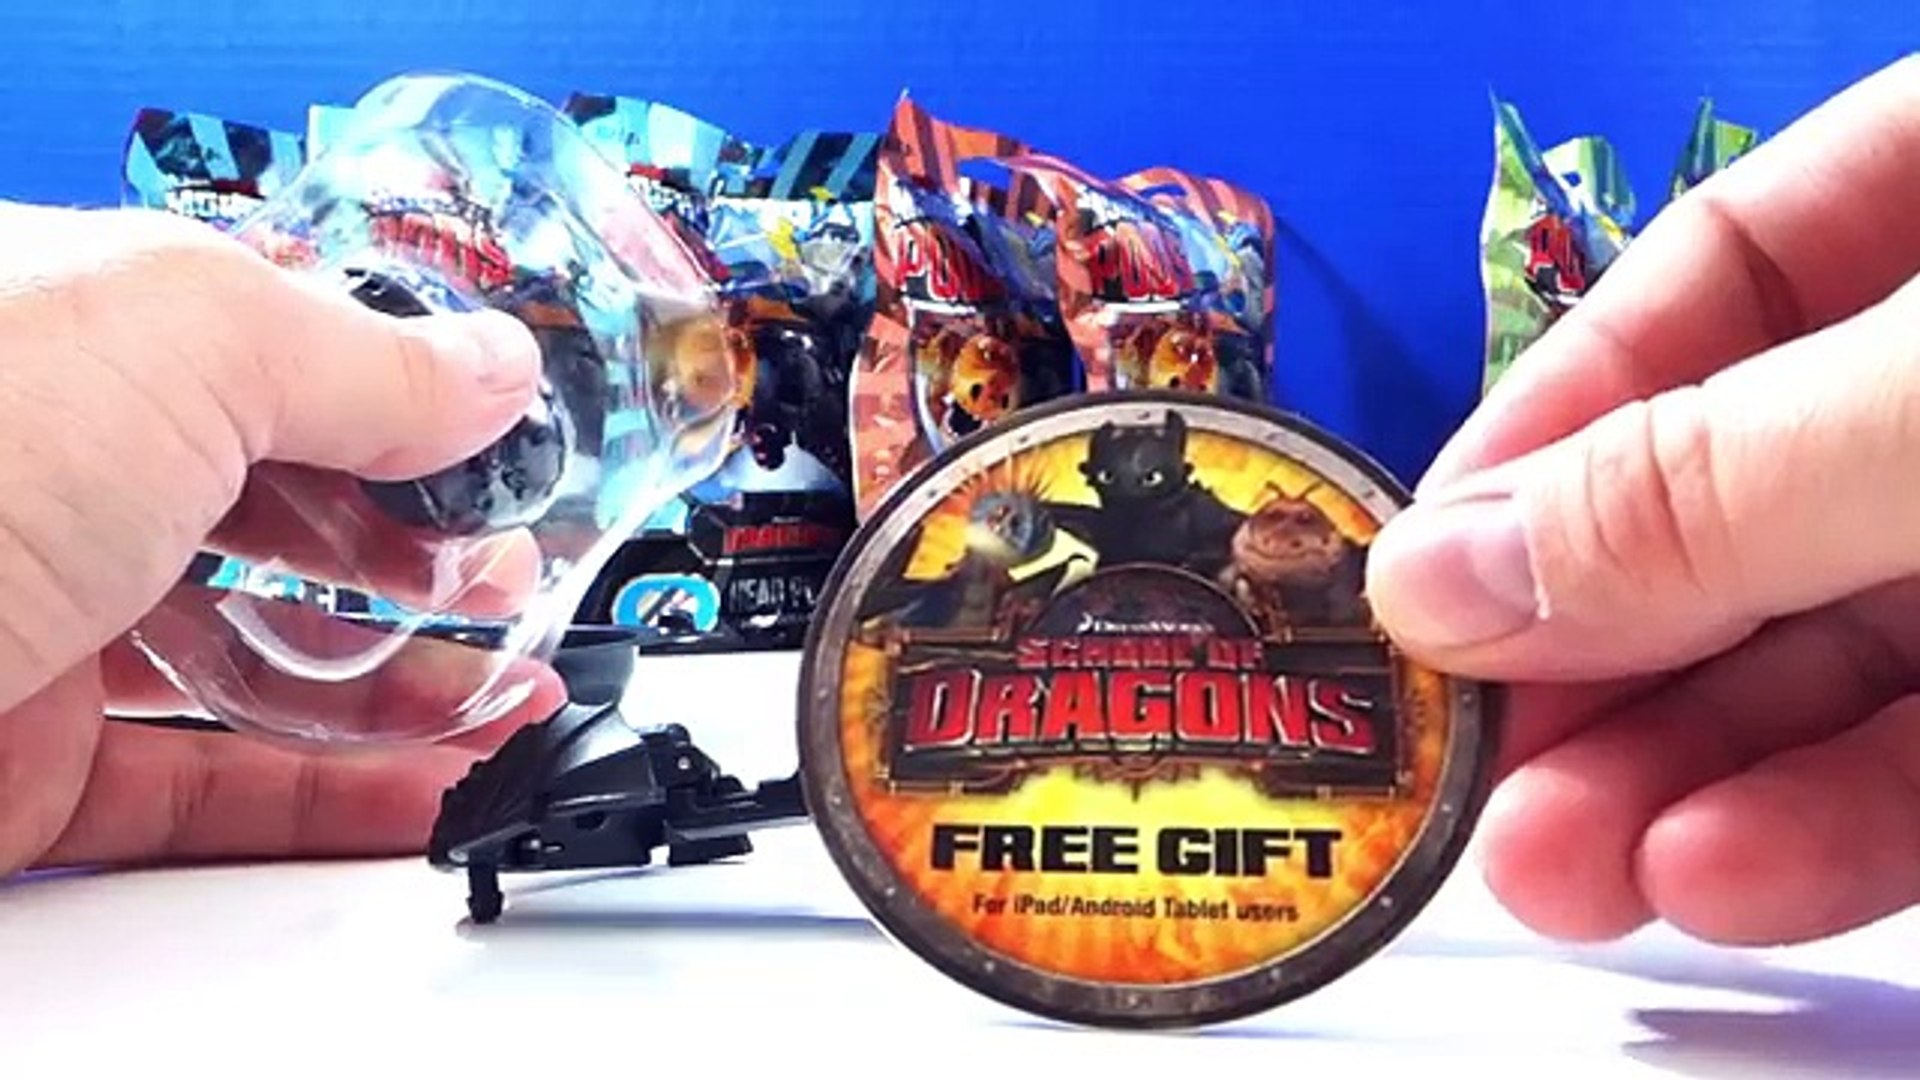 How to Train Your Dragon 2 Morpho Pods Nabi Tablet Toothless DreamWorks